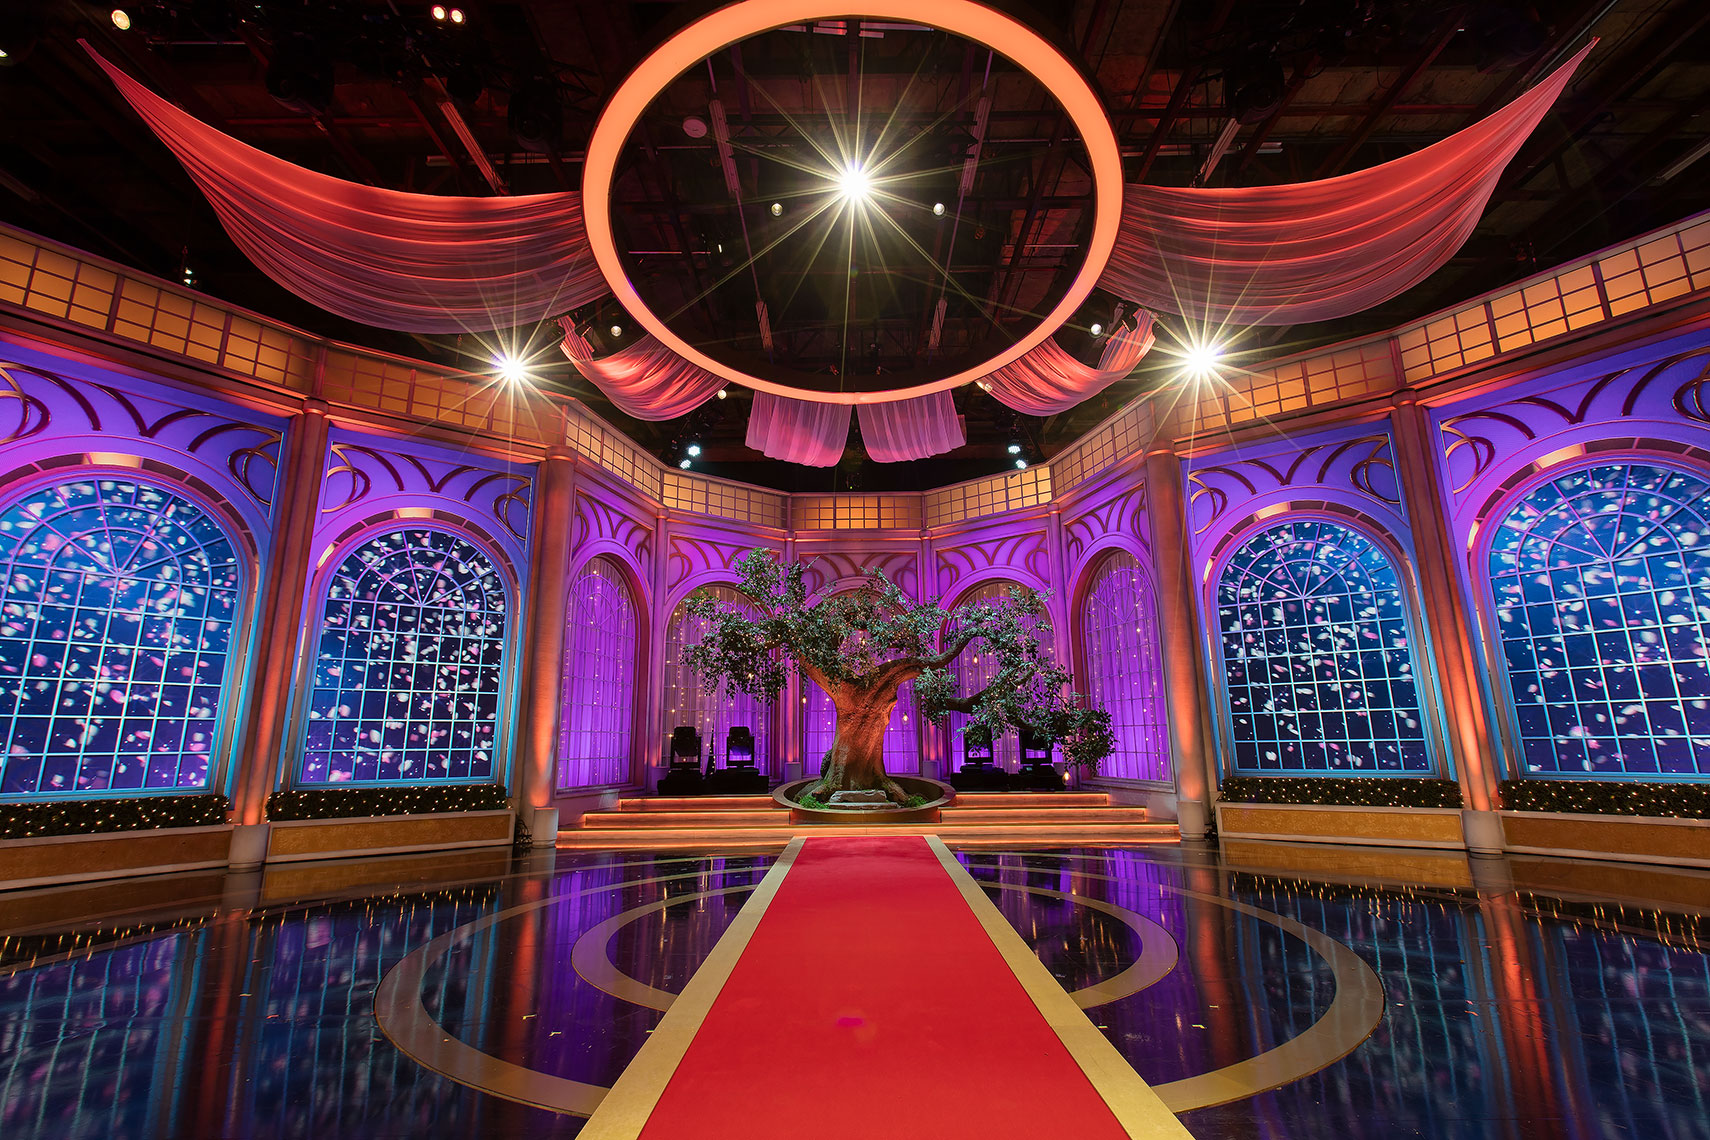 Interior television studio set with colourful banners, walls against a black glossy floor